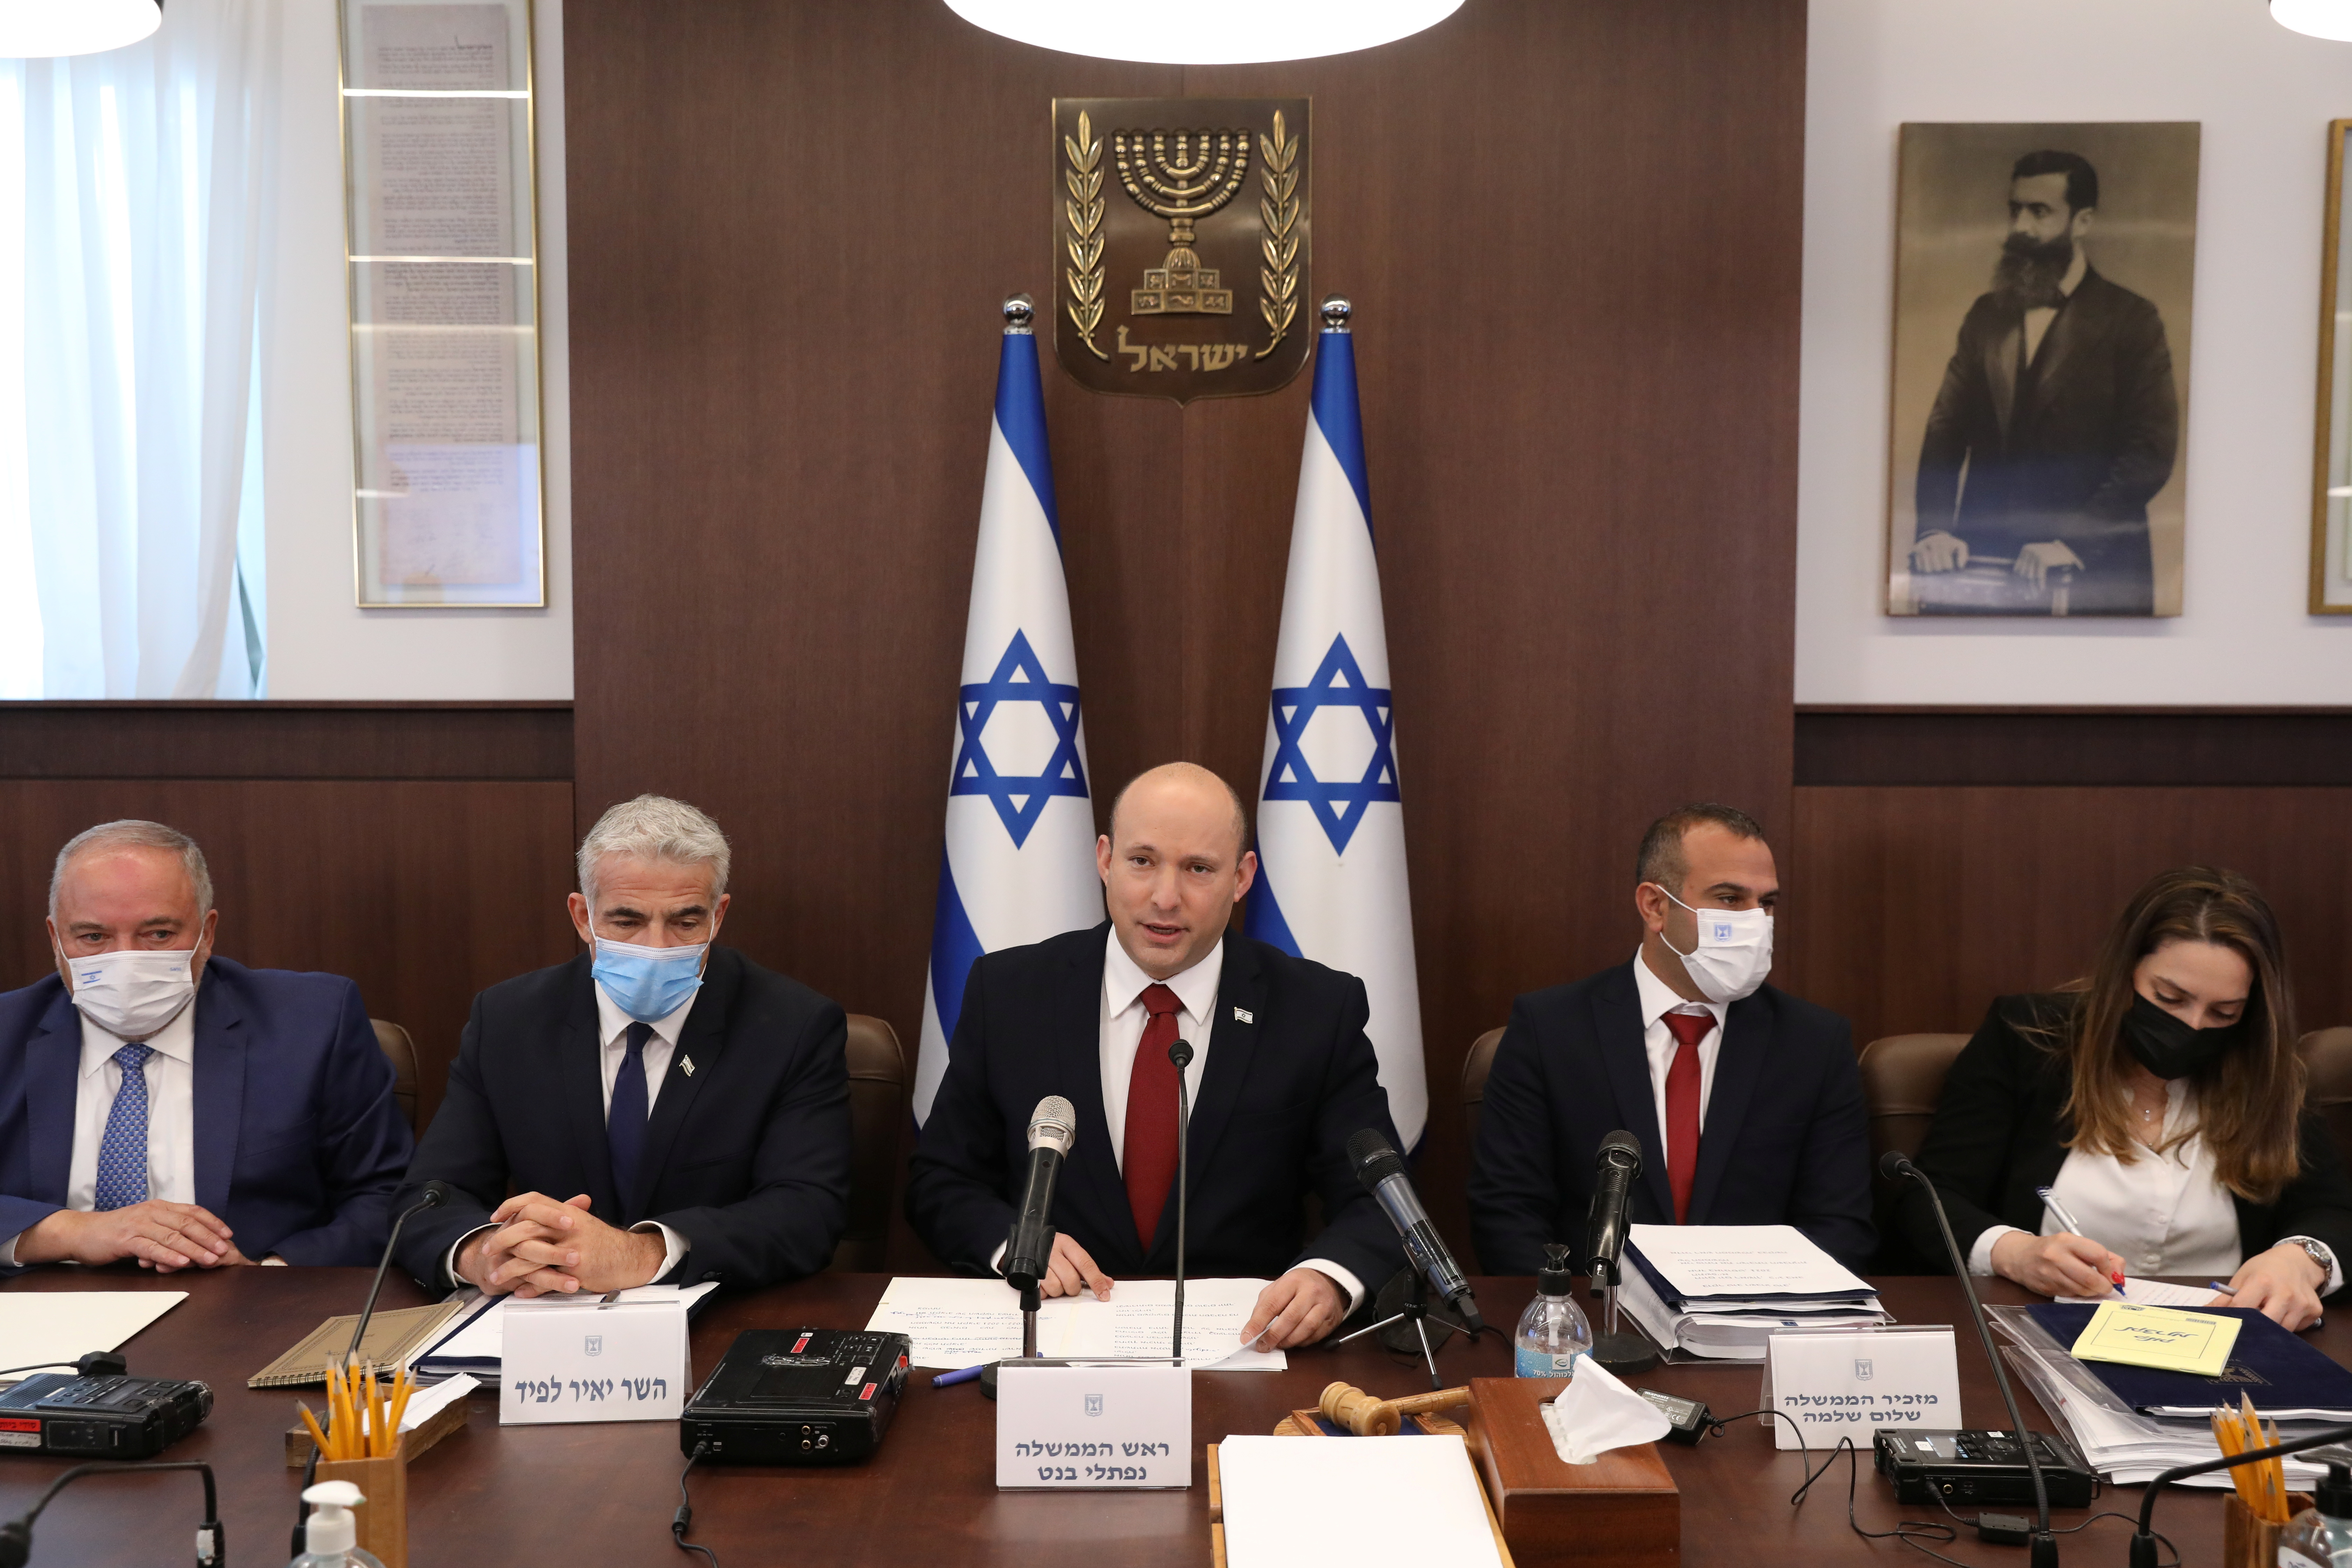 Israeli Prime Minister Naftali Bennett attends the weekly cabinet meeting at the prime minister's office in Jerusalem August 1, 2021. Abir Sultan/Pool via REUTERS